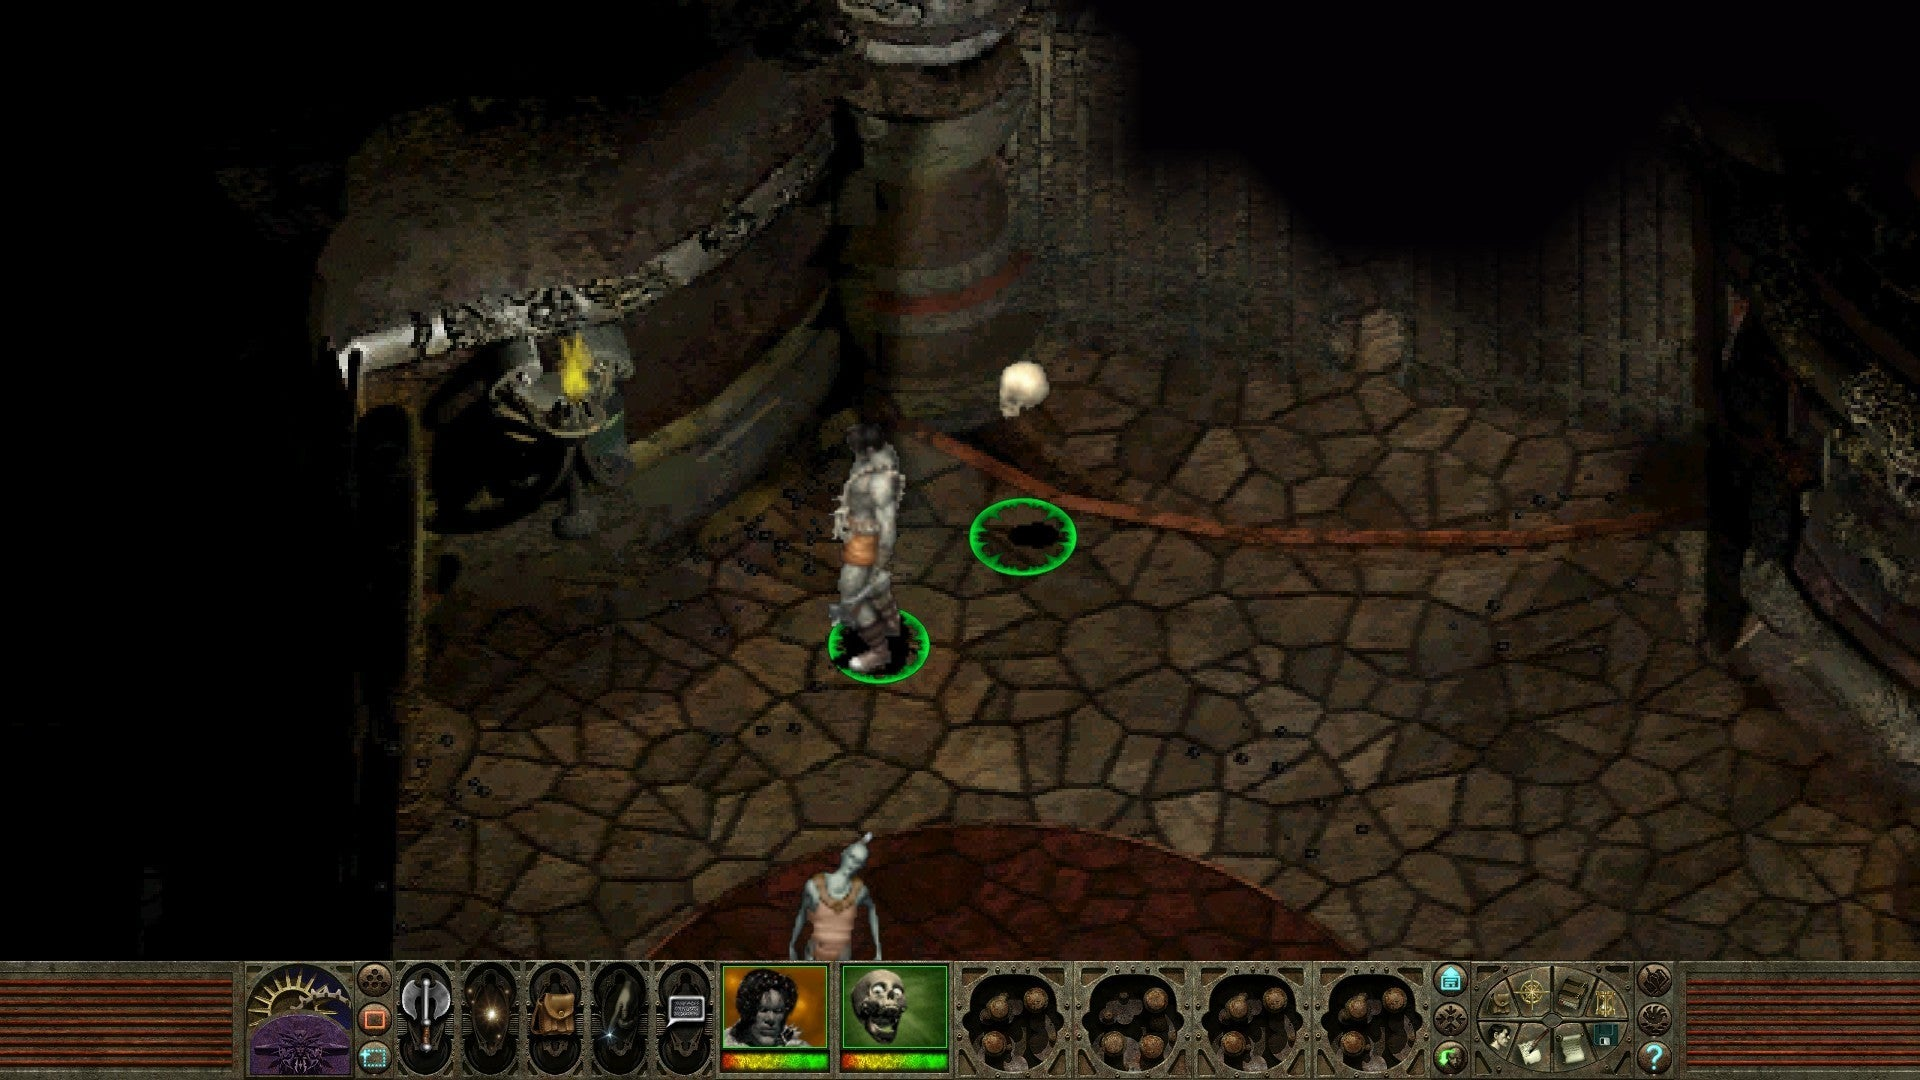 For Planescape: Torment on the PC, GameFAQs has 13 FAQs (game guides and walkthroughs).